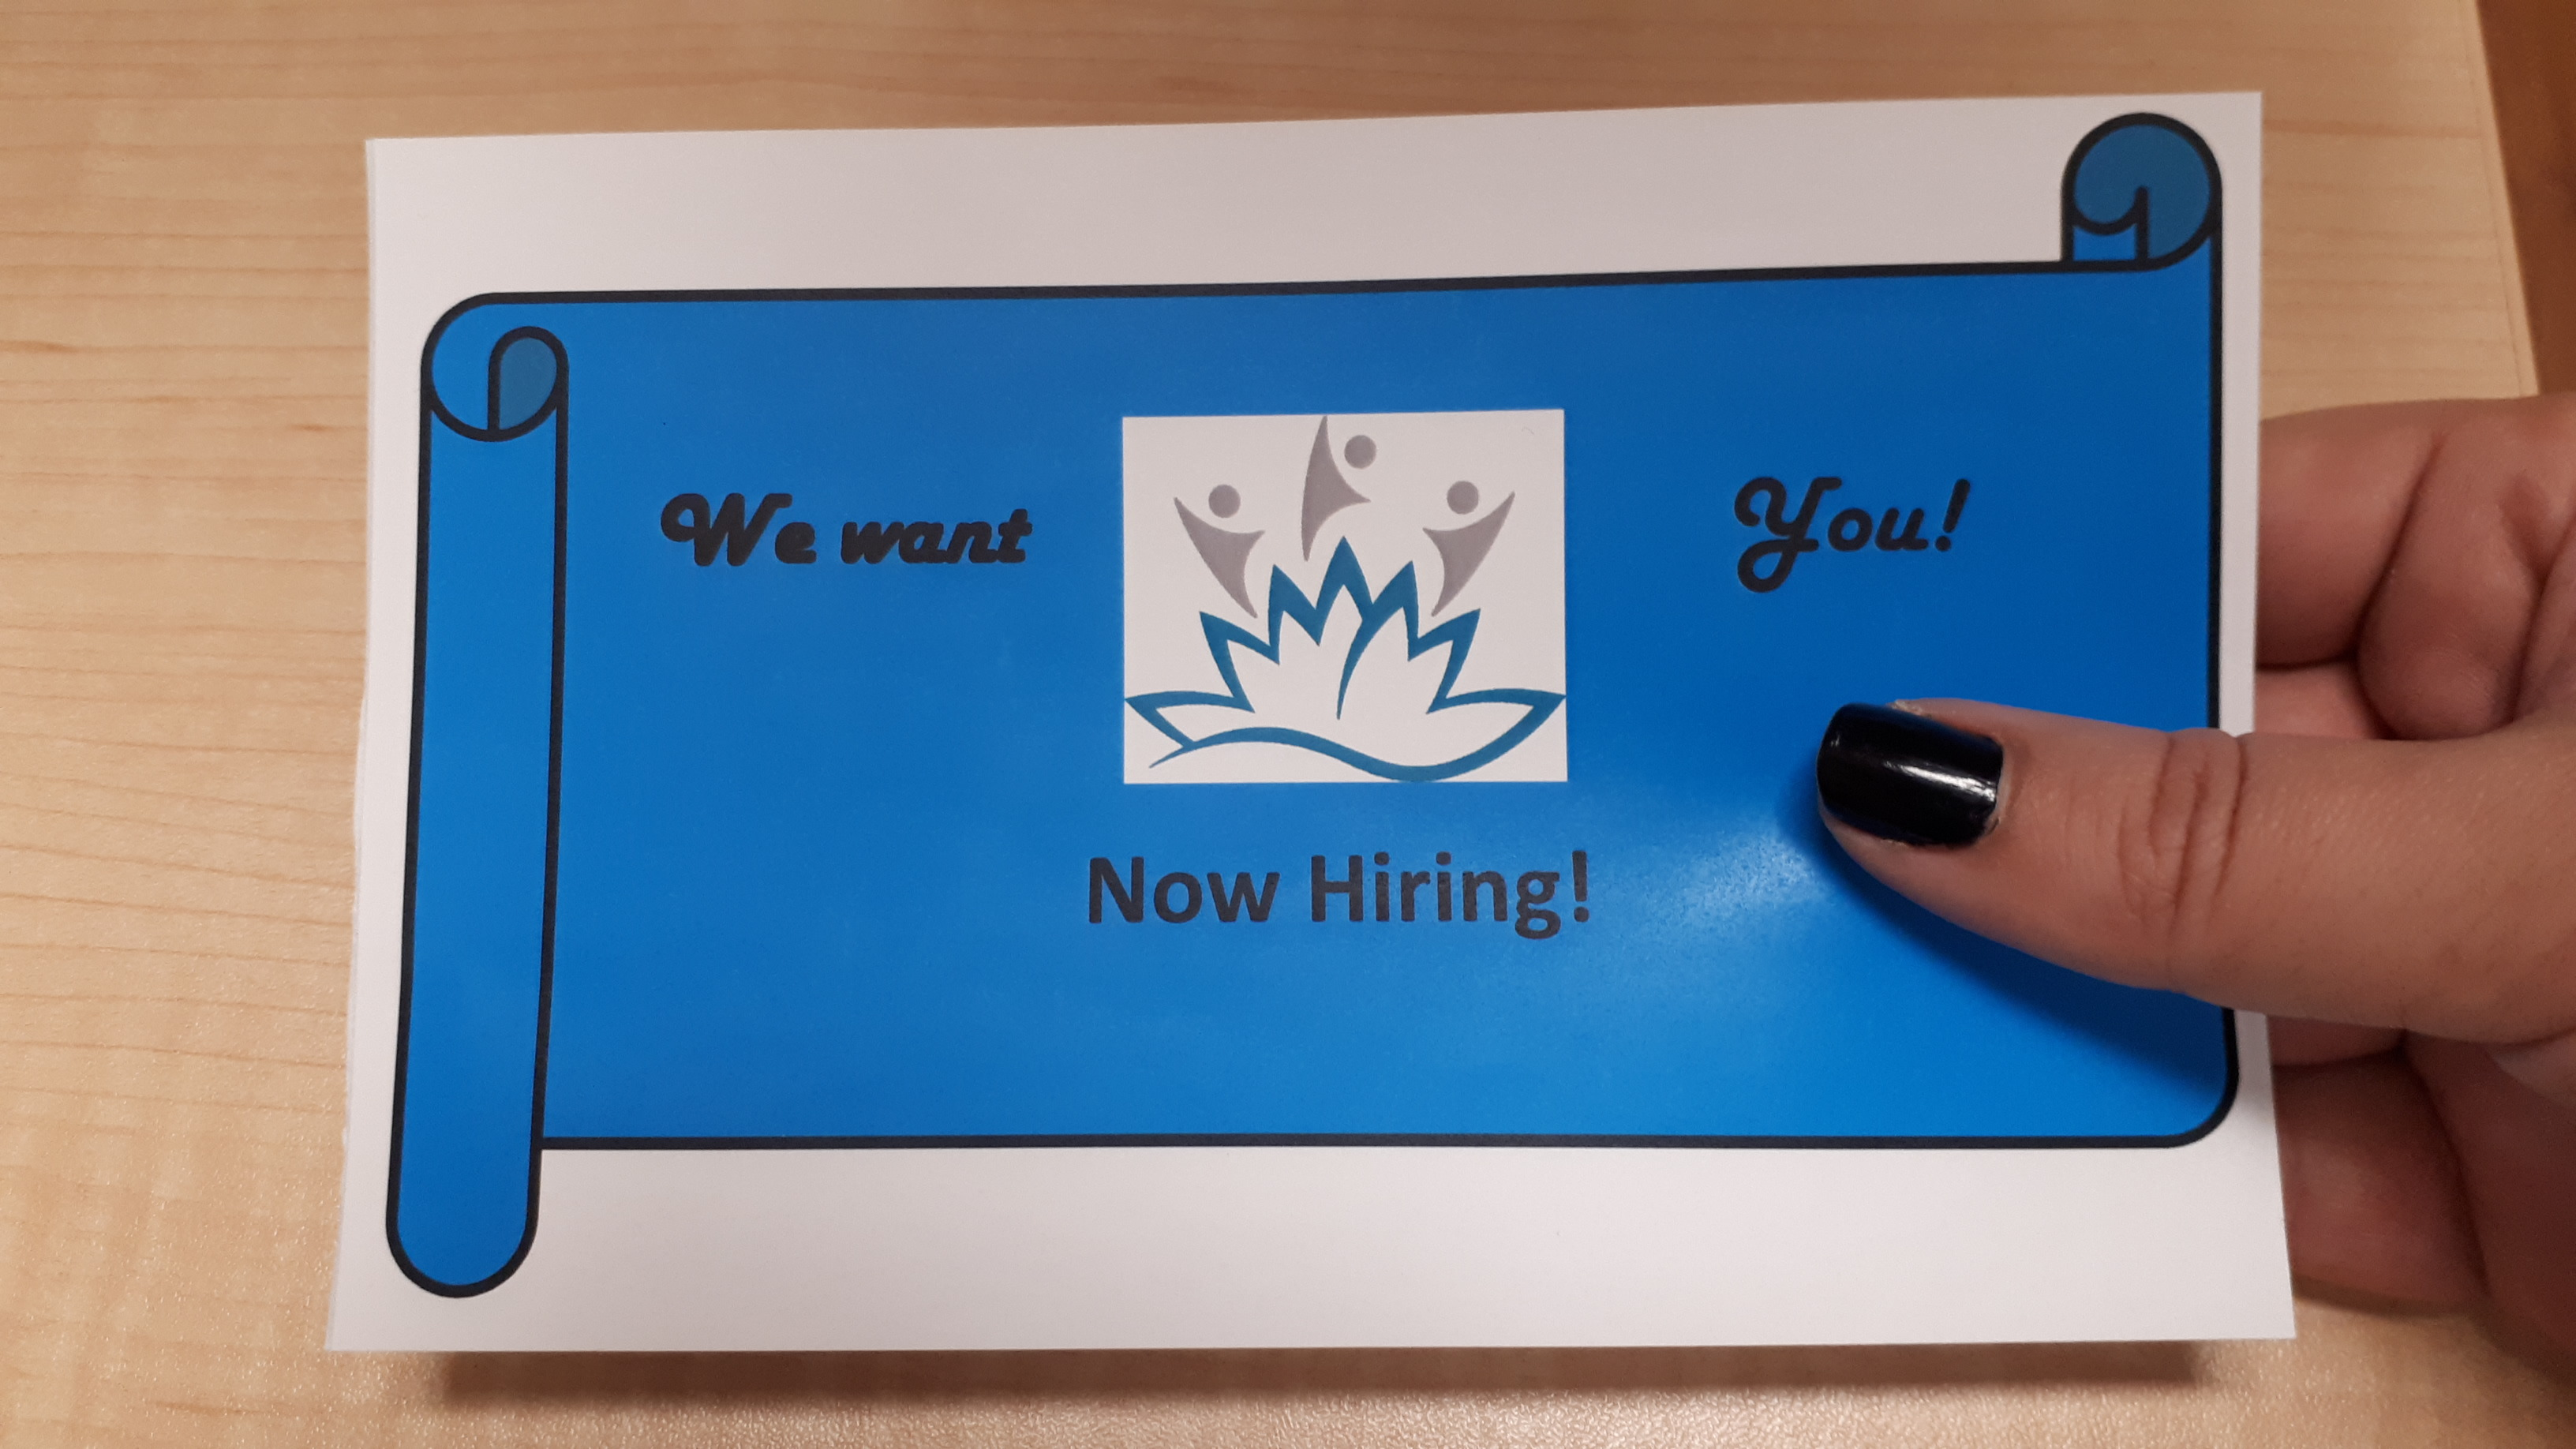 Now Hiring - We want You!